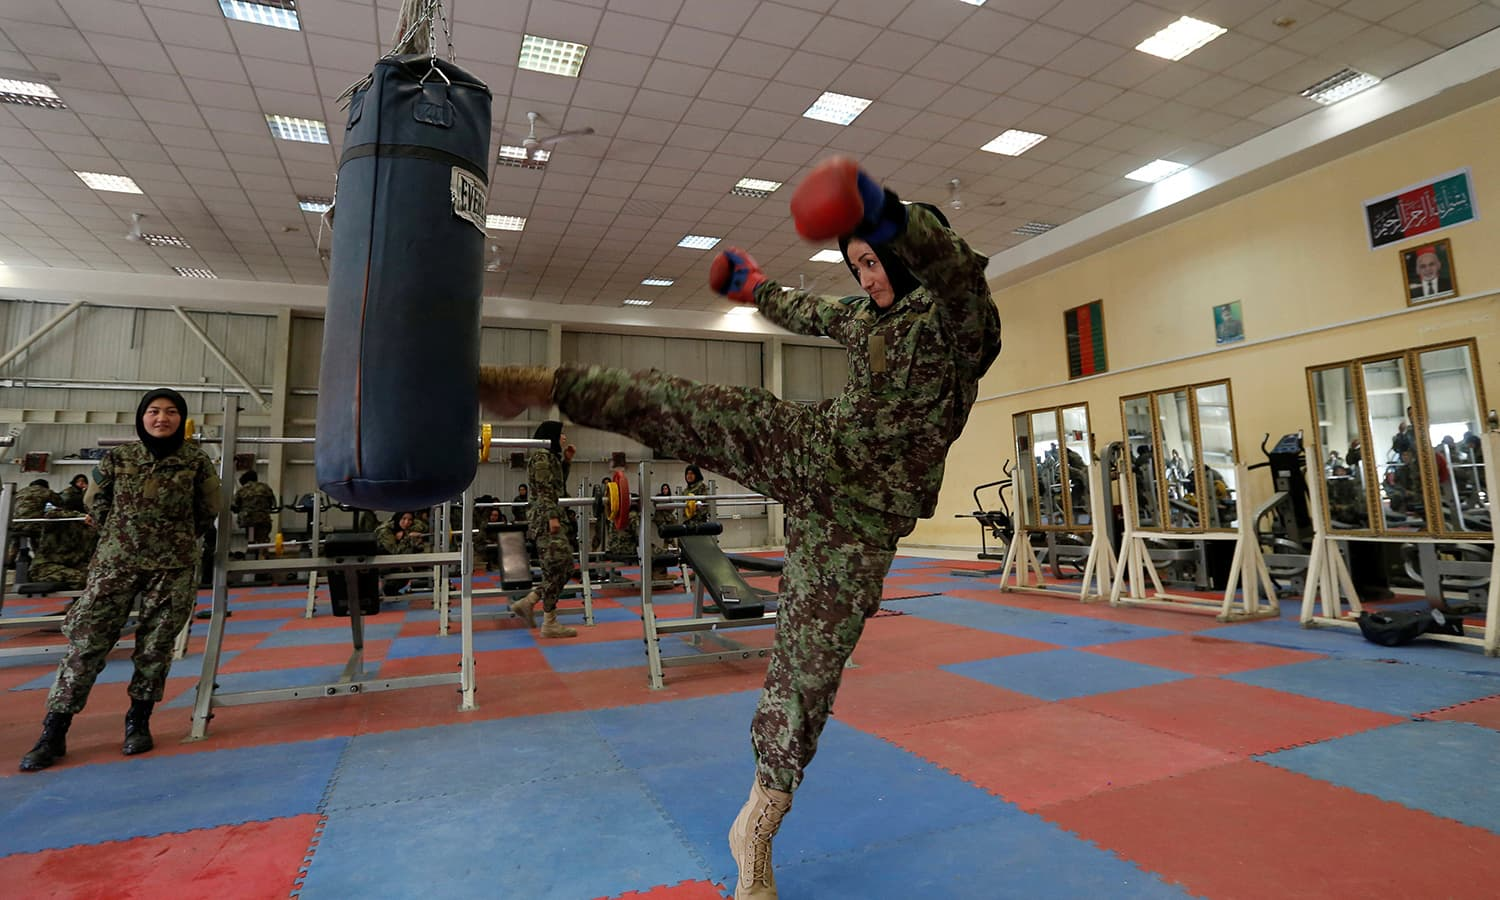 Fatima Rezai, 21, a female officer from the Afghan National Army (ANA) practices with a punch bag during an exercise session at at the Kabul Military Training Centre (KMTC) in Kabul ─Reuters